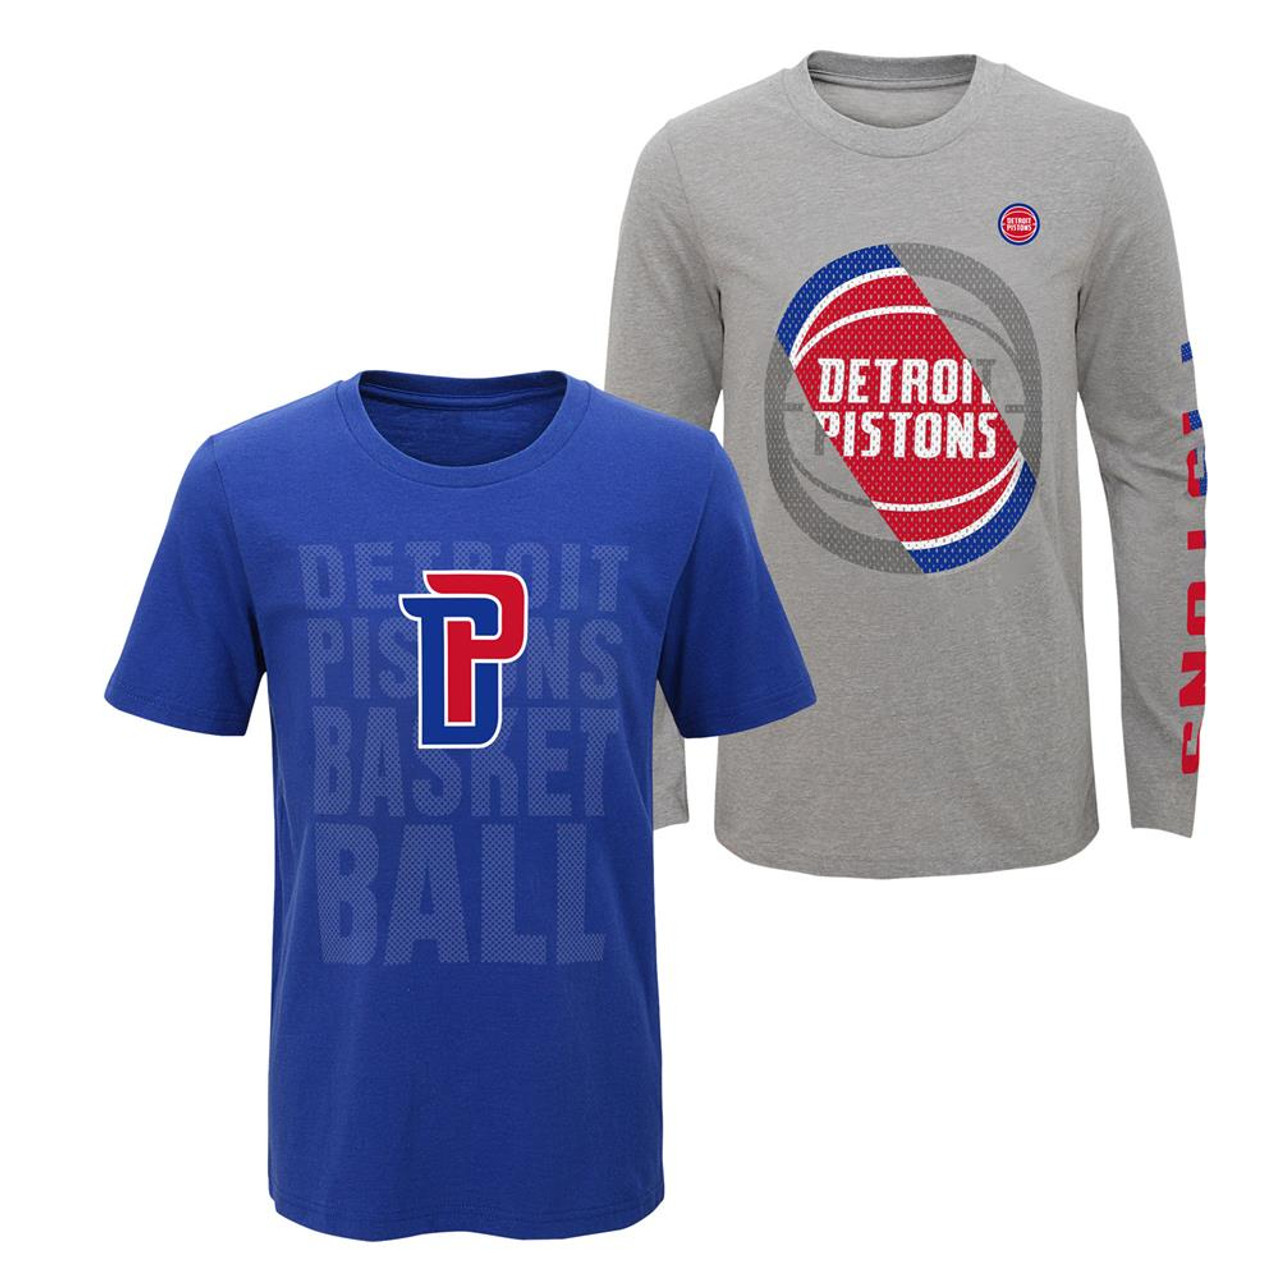 Youth Boys Detroit Pistons Tee Shirt 3 in 1 Combo Set